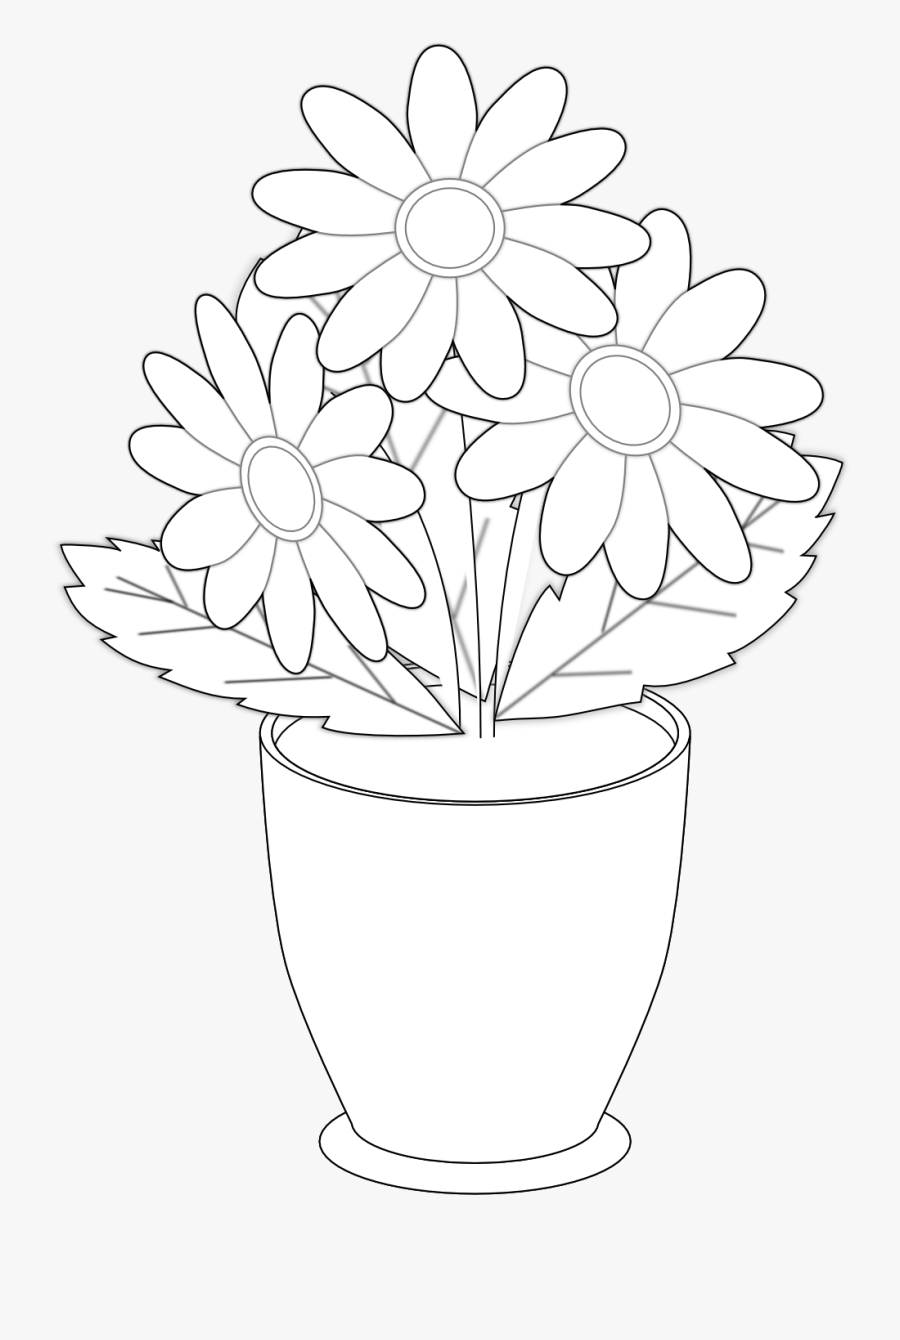 Flowers For Black And White Flower Clipart Daisy - Flower Vase With Flowers Drawing, Transparent Clipart